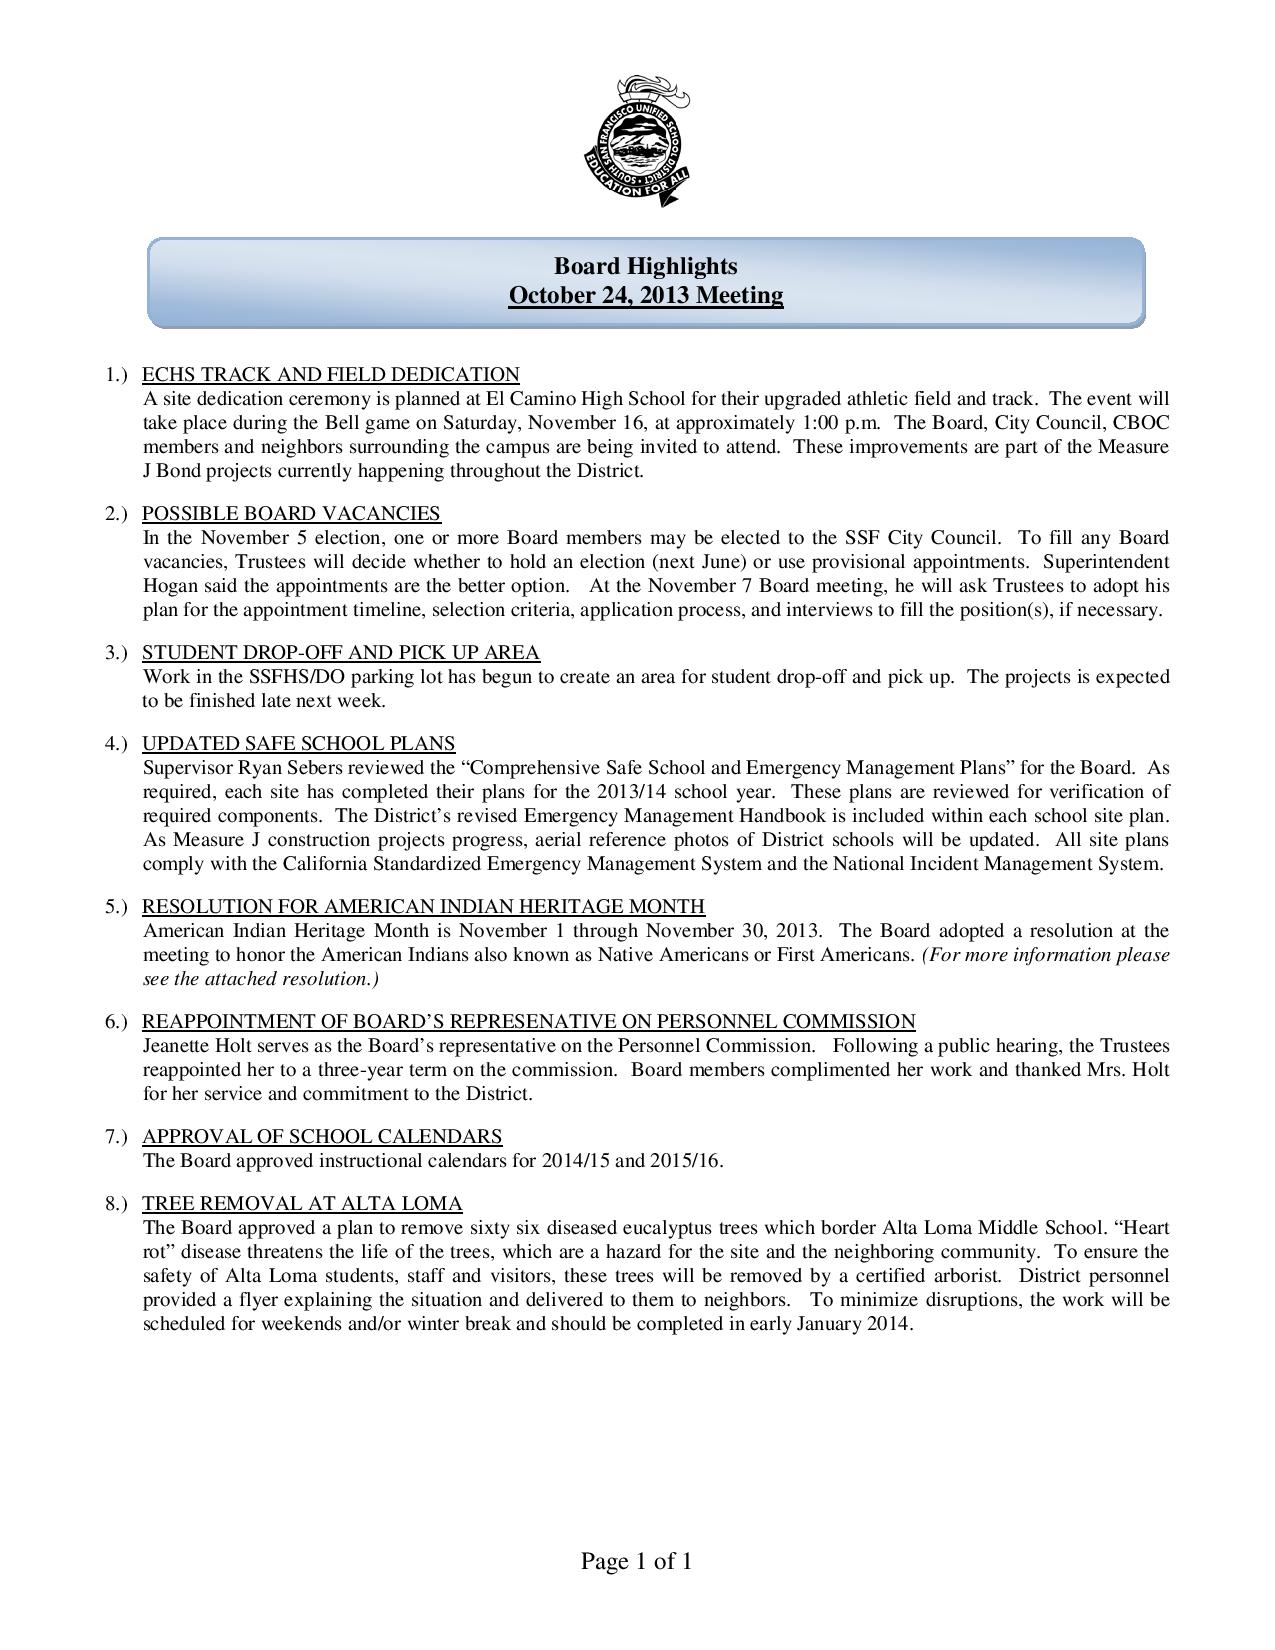 10-24-13 Board highlights-page-001